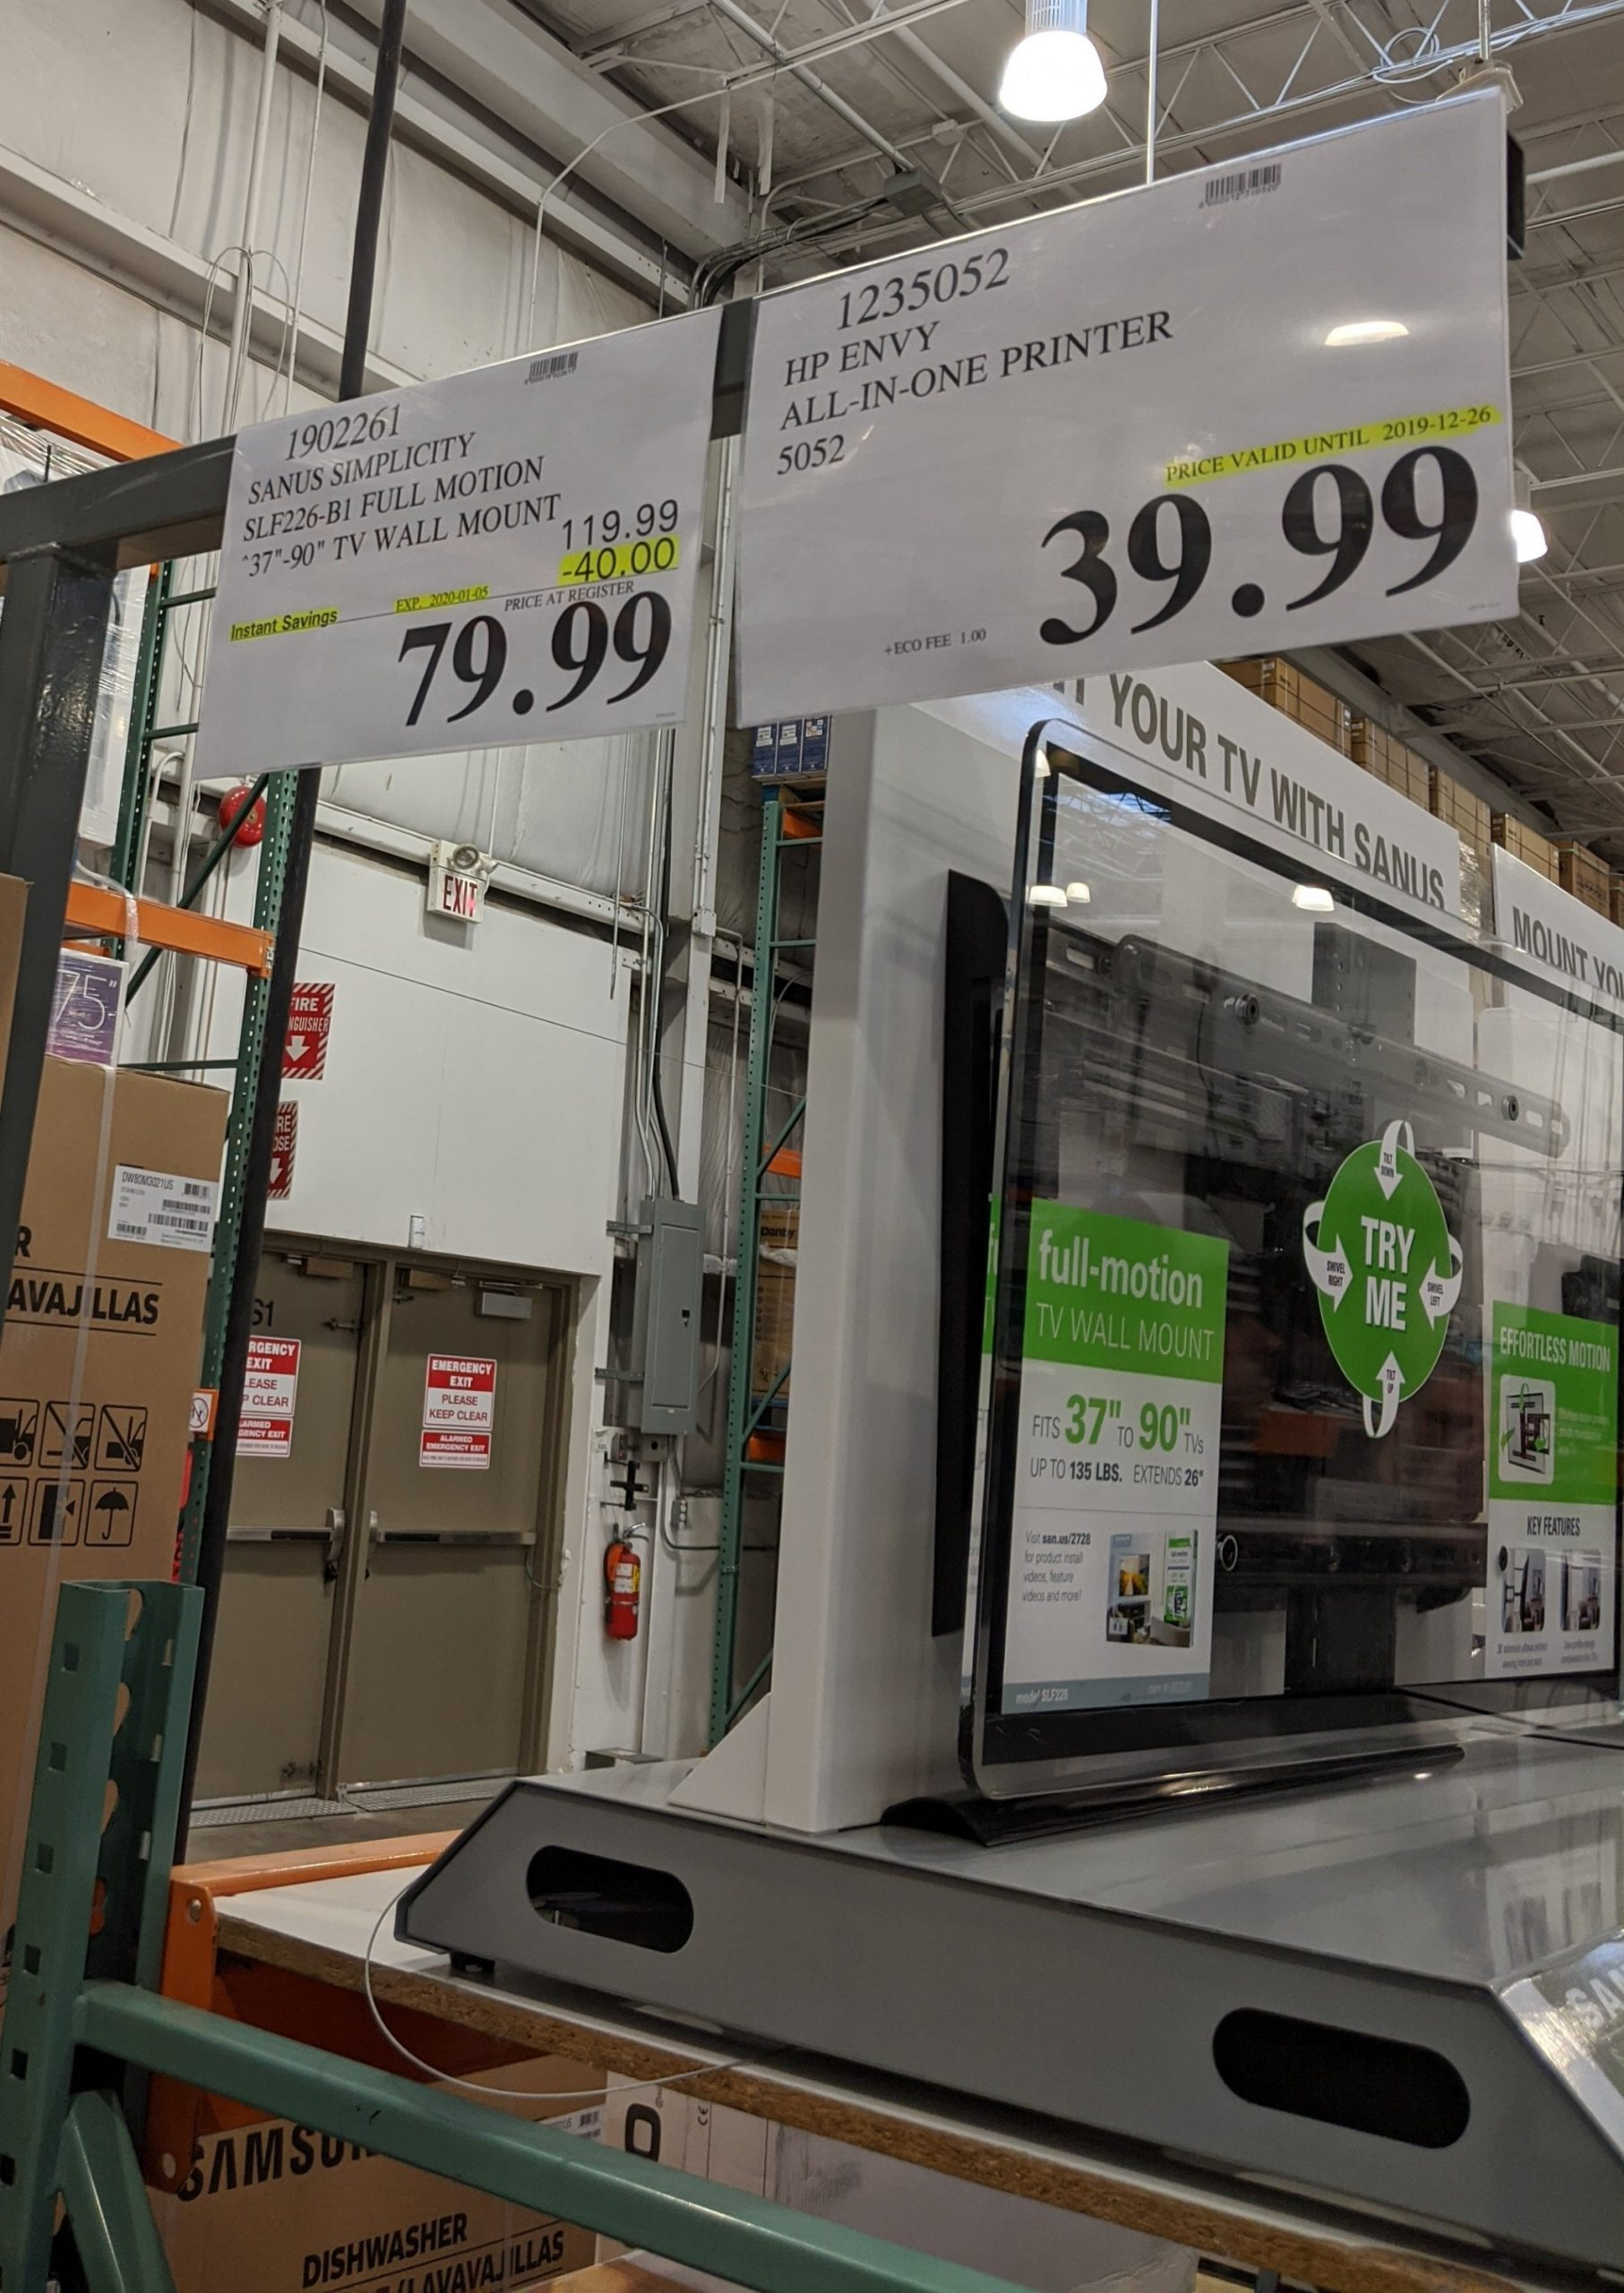 Costco unadvertised deals of the week starting December